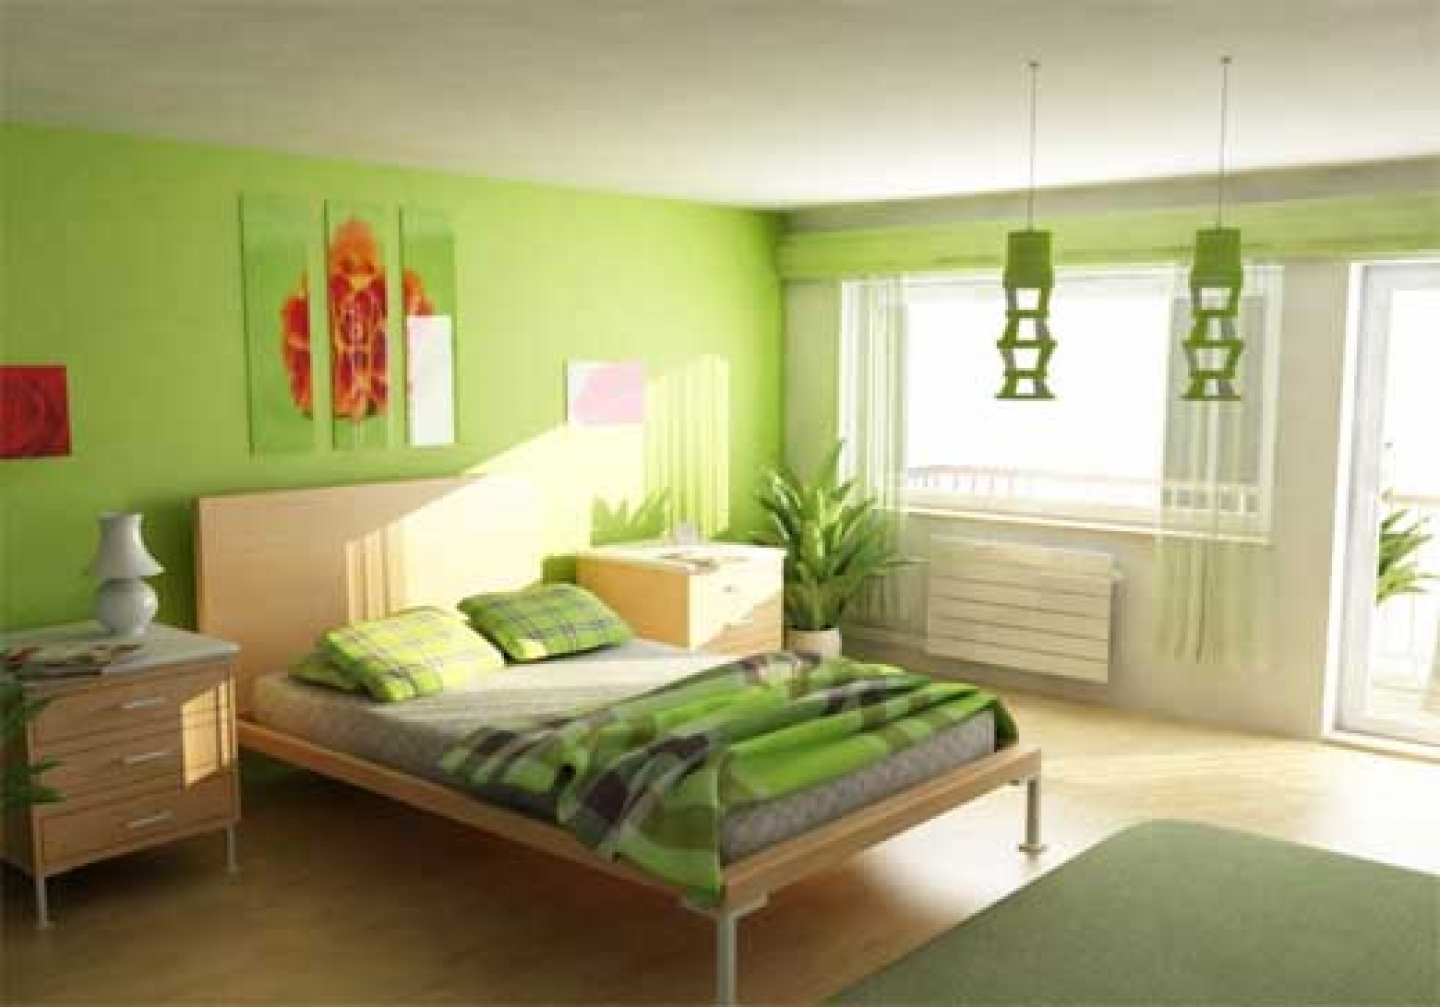 paint color ideas for bedroom photo - 2